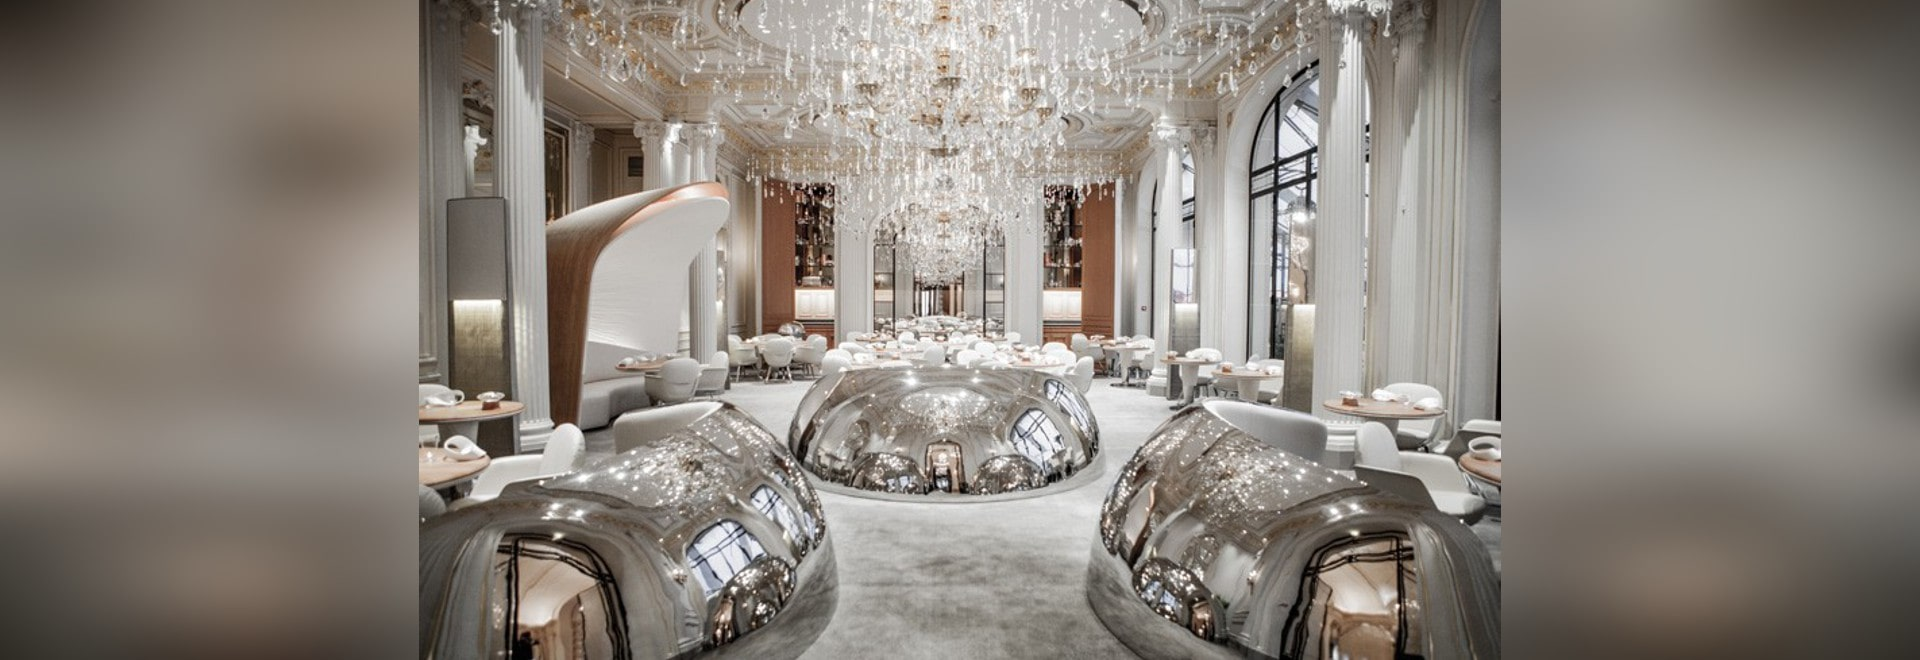 Jouin Manku Design A Restaurant Filled With Stainless-Steel Pods